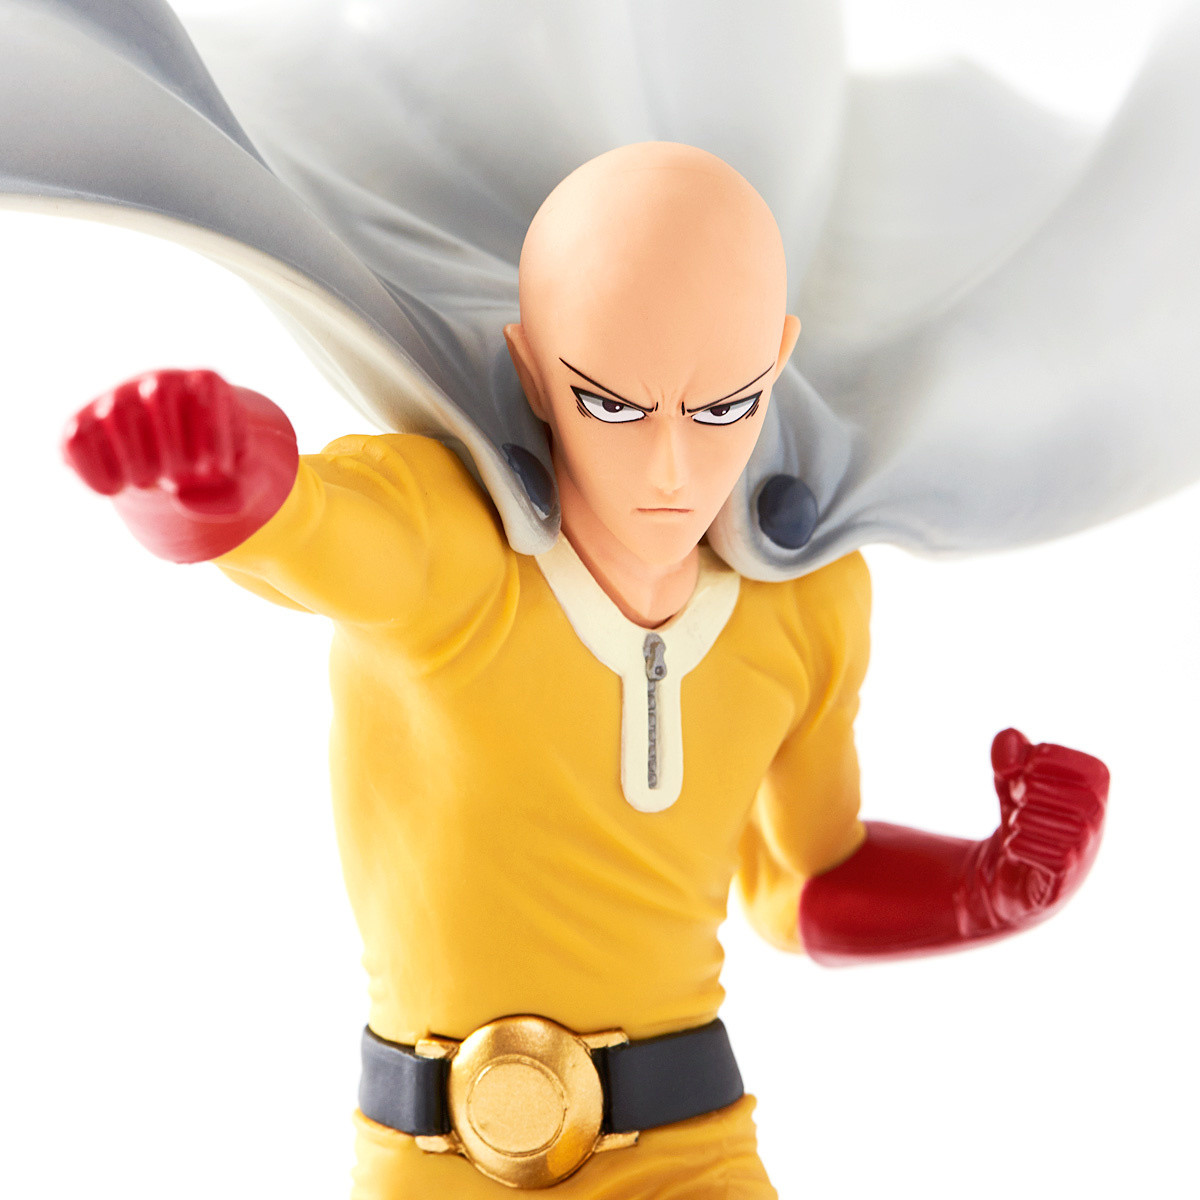 Dxf One Punch Man Saitama Available First On Tom